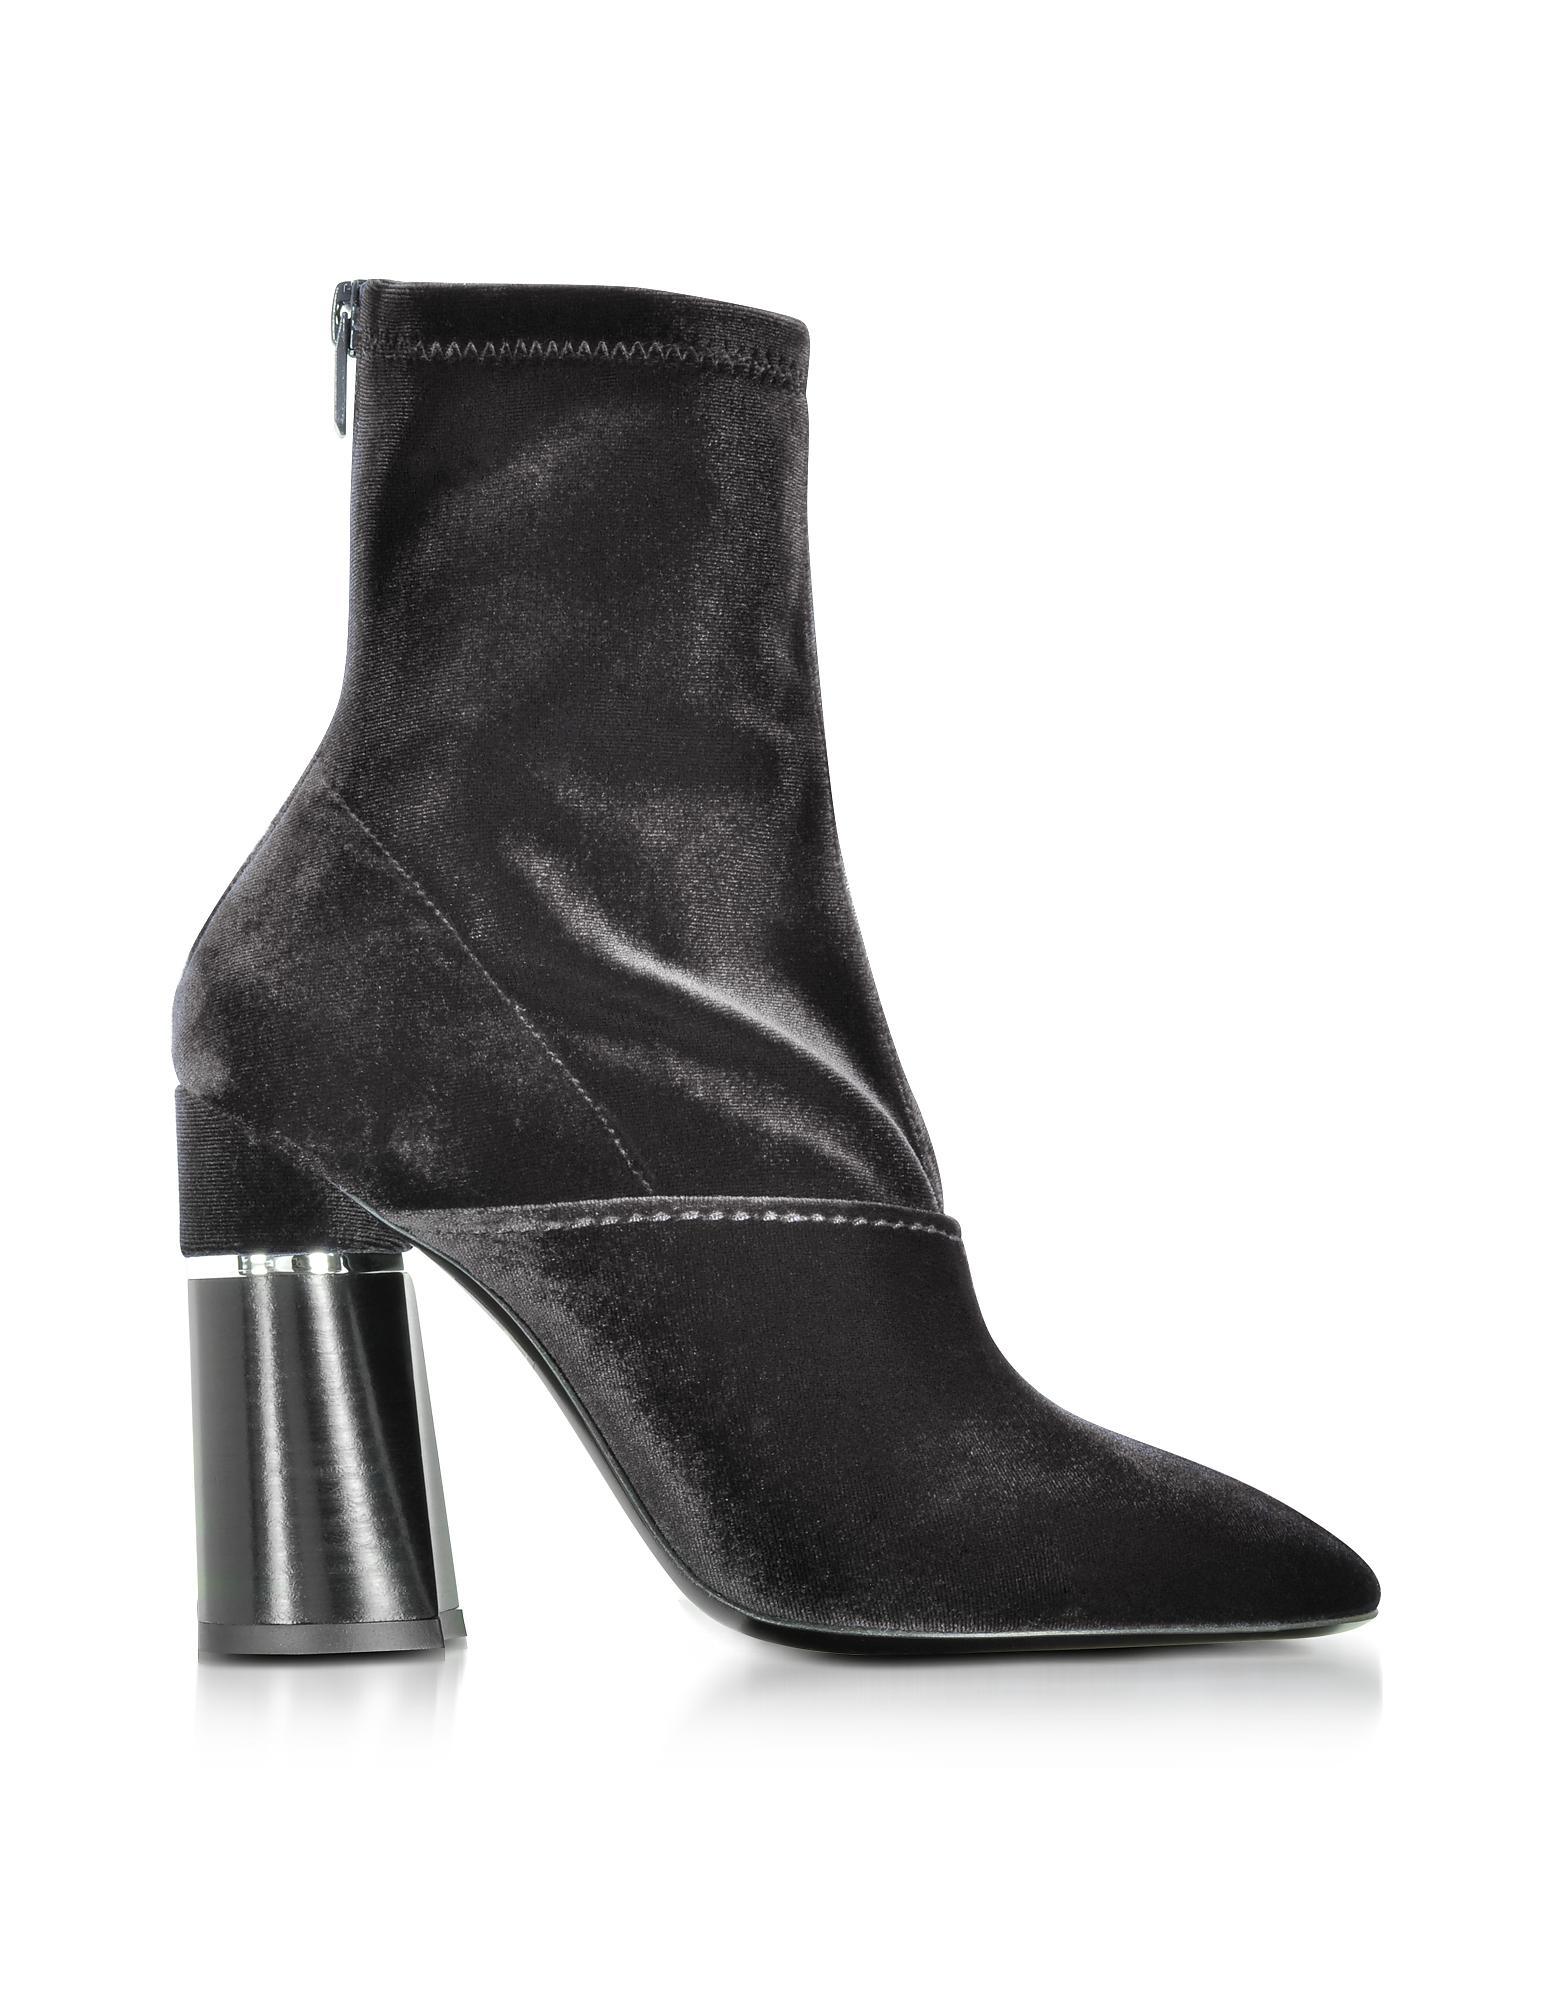 3.1 Phillip Lim Shoes, Kyoto Velvet Stretch High Heel Ankle Boots